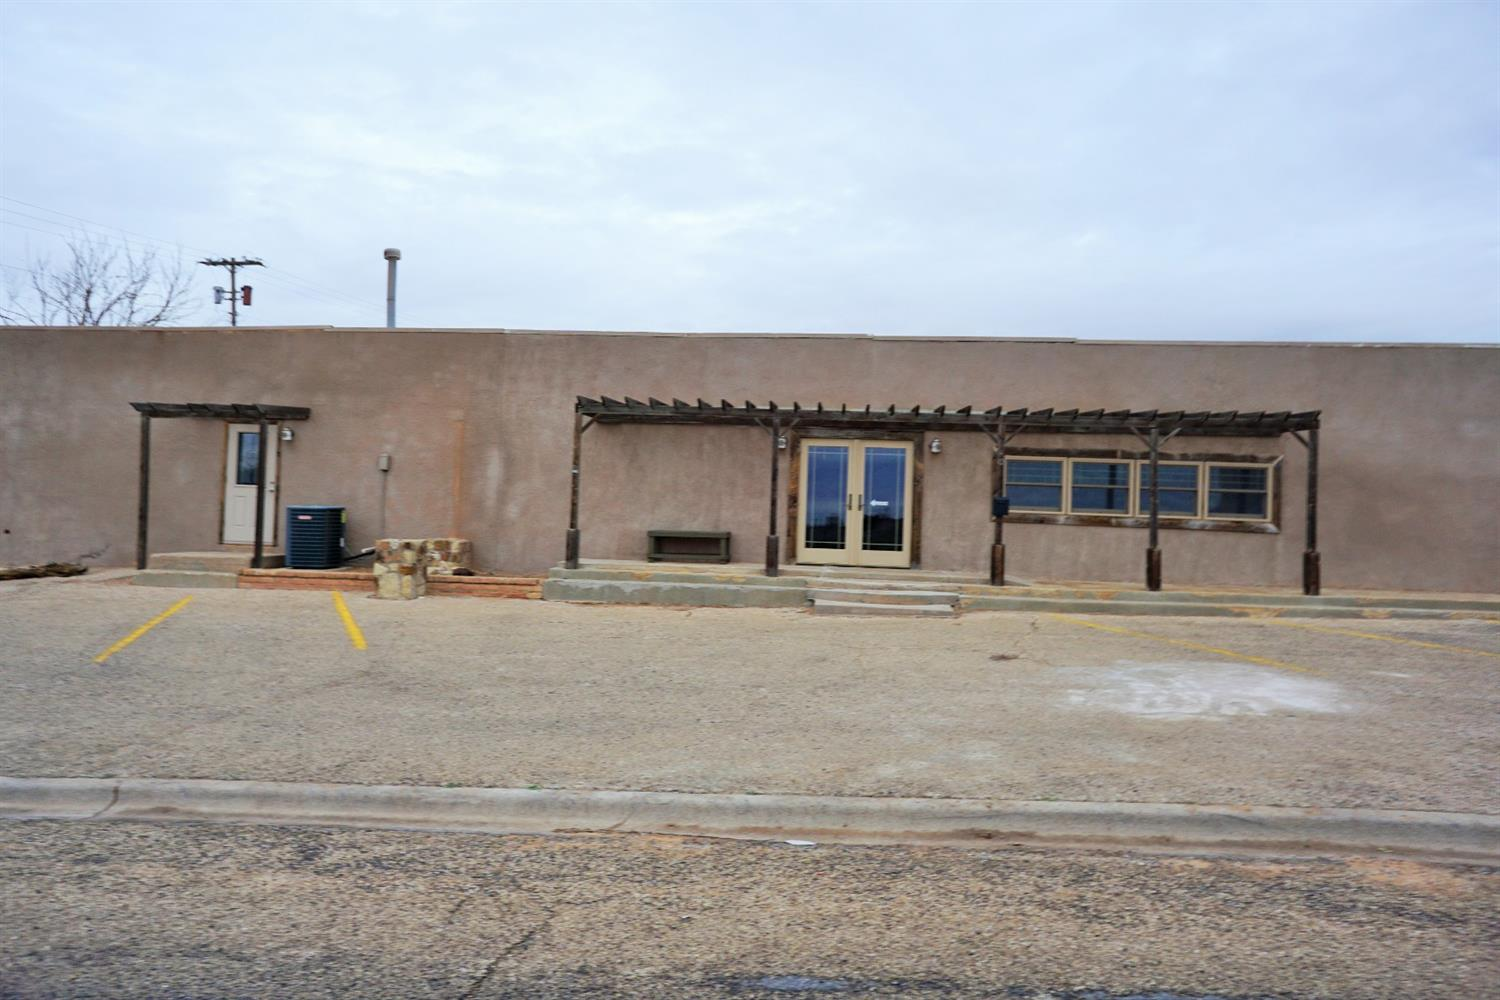 Awesome place for your new business venture! Could be used for just about anything, it was previously Terry Country Country Store.  Great location on HWY 380, just inside the city limits.  The property is updated with 1 bathroom, separate office space, kitchen area, nice paint, newer windows and plenty of space to make it what you want.